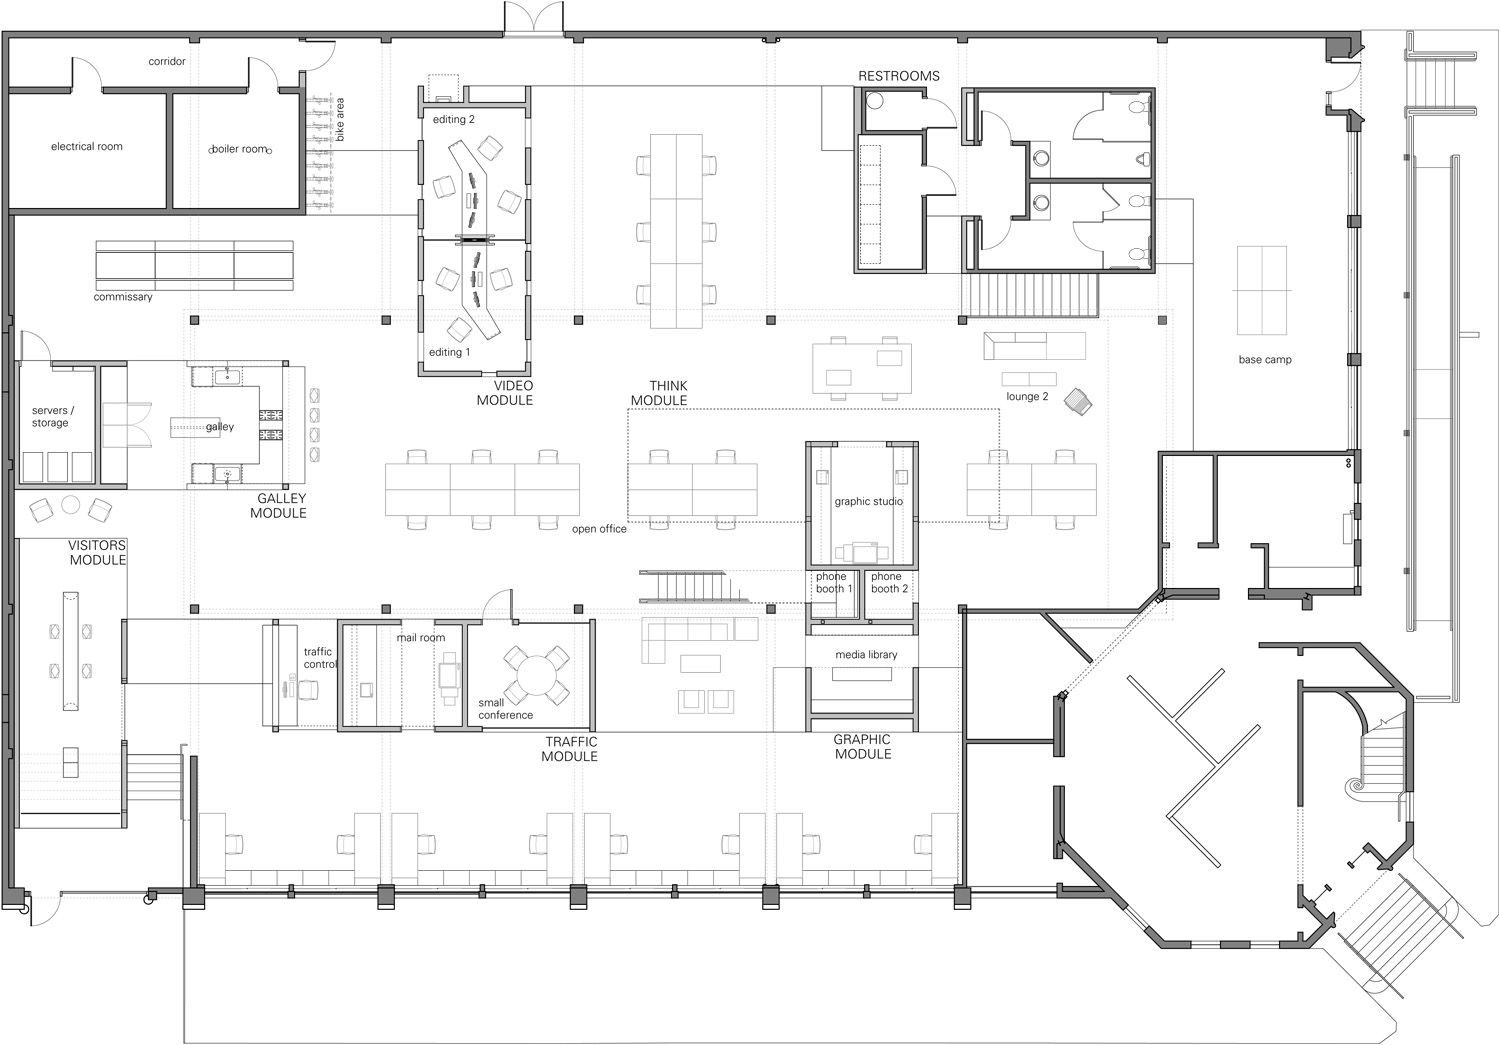 North skylab architecture office floor plan office for Office interior plan